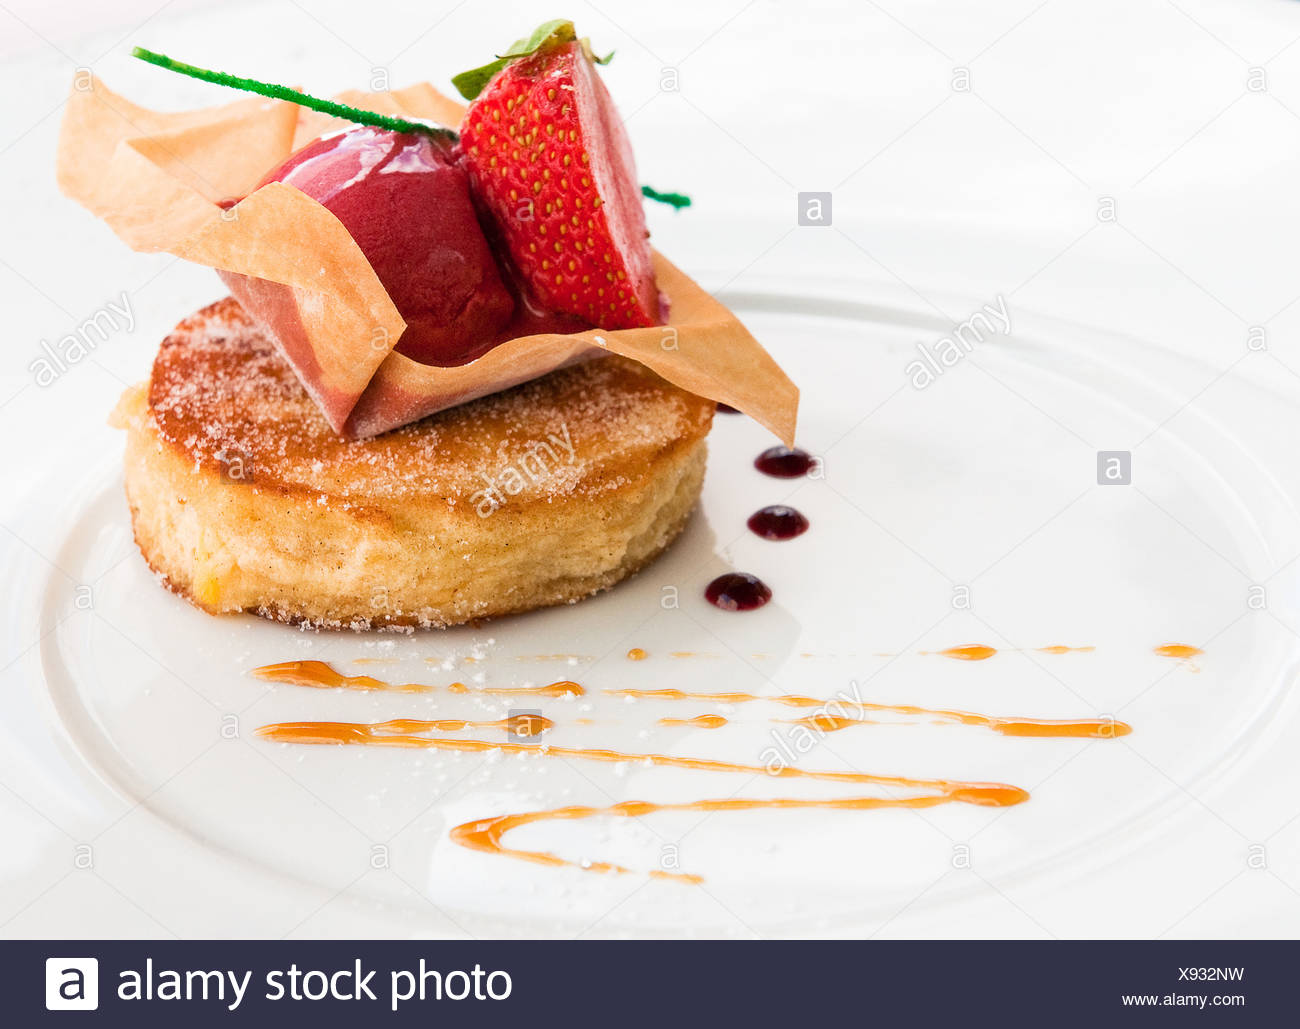 fancy dessert - Stock Image